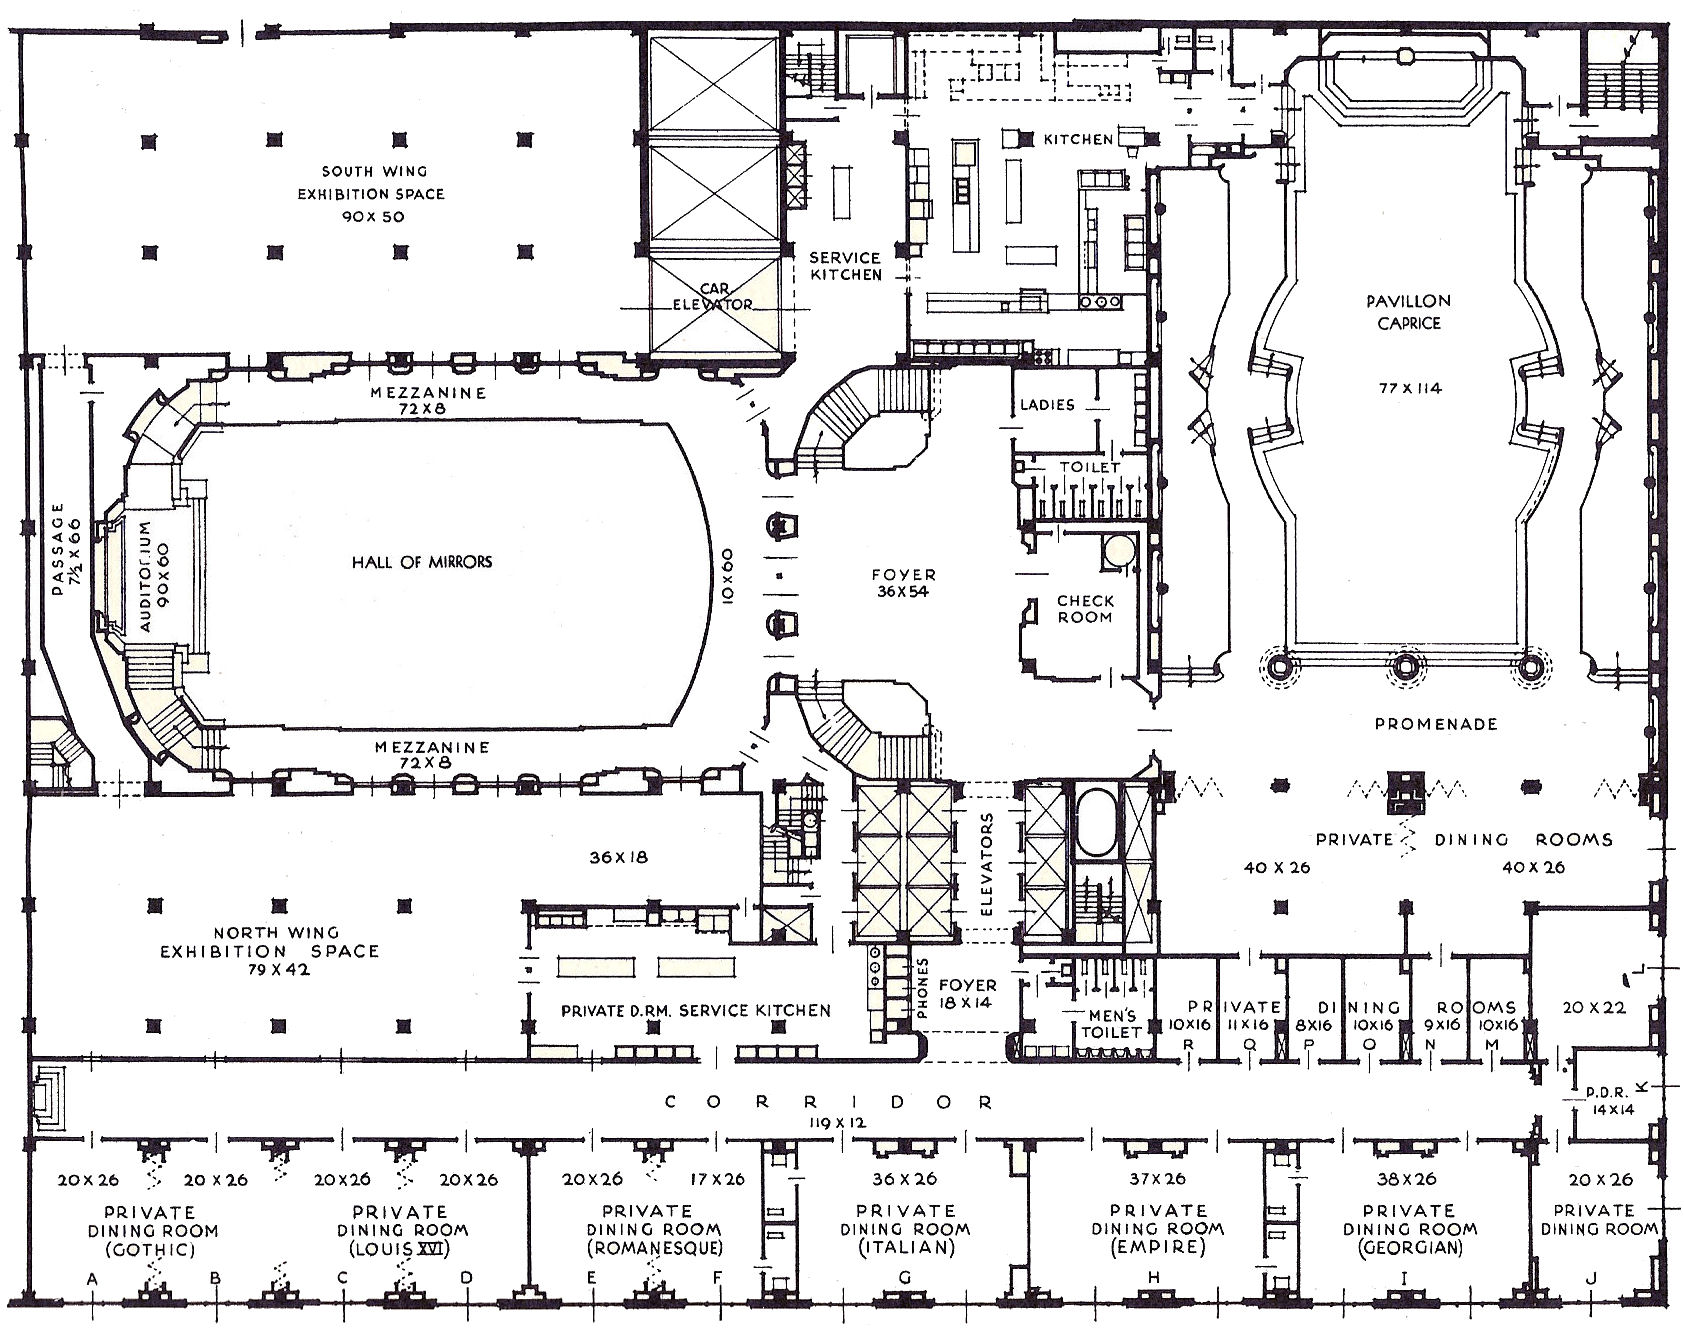 Office Furniture West Palm Beach Plaza floor plan index of gaming tools shadowrun maps floorplans on ...